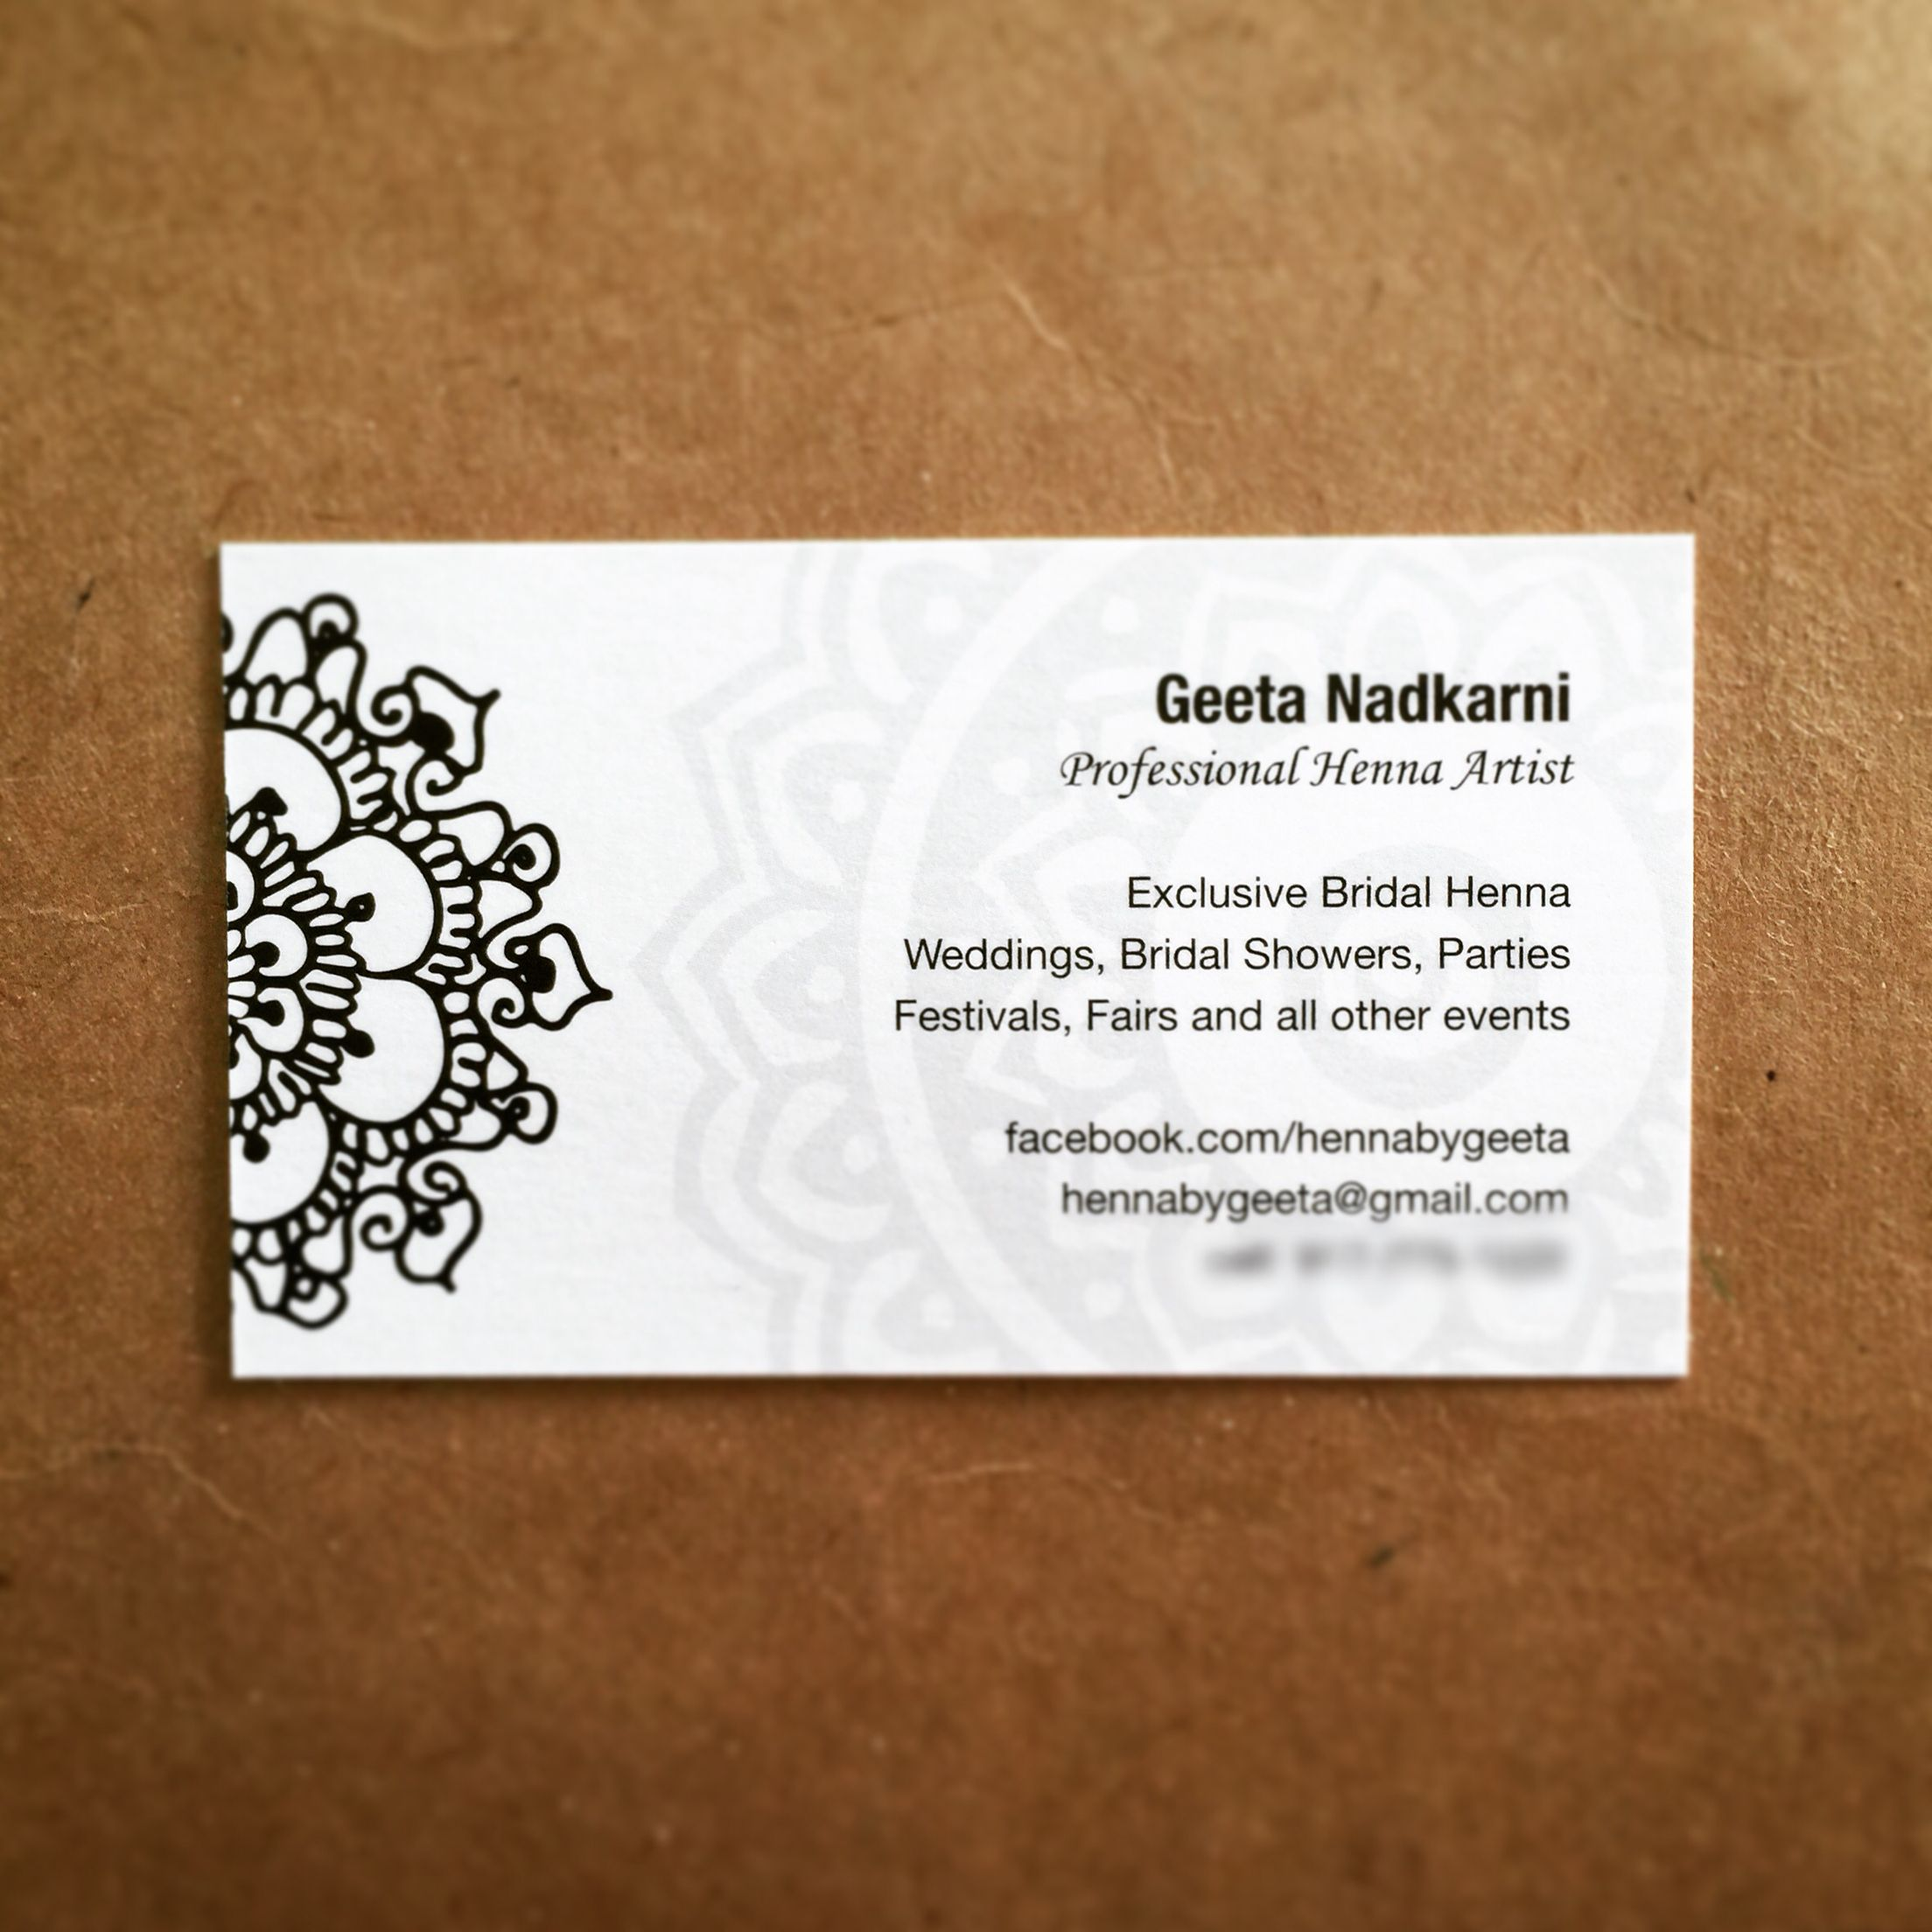 Henna by Geeta mehndi mehendi designs check out www.facebook